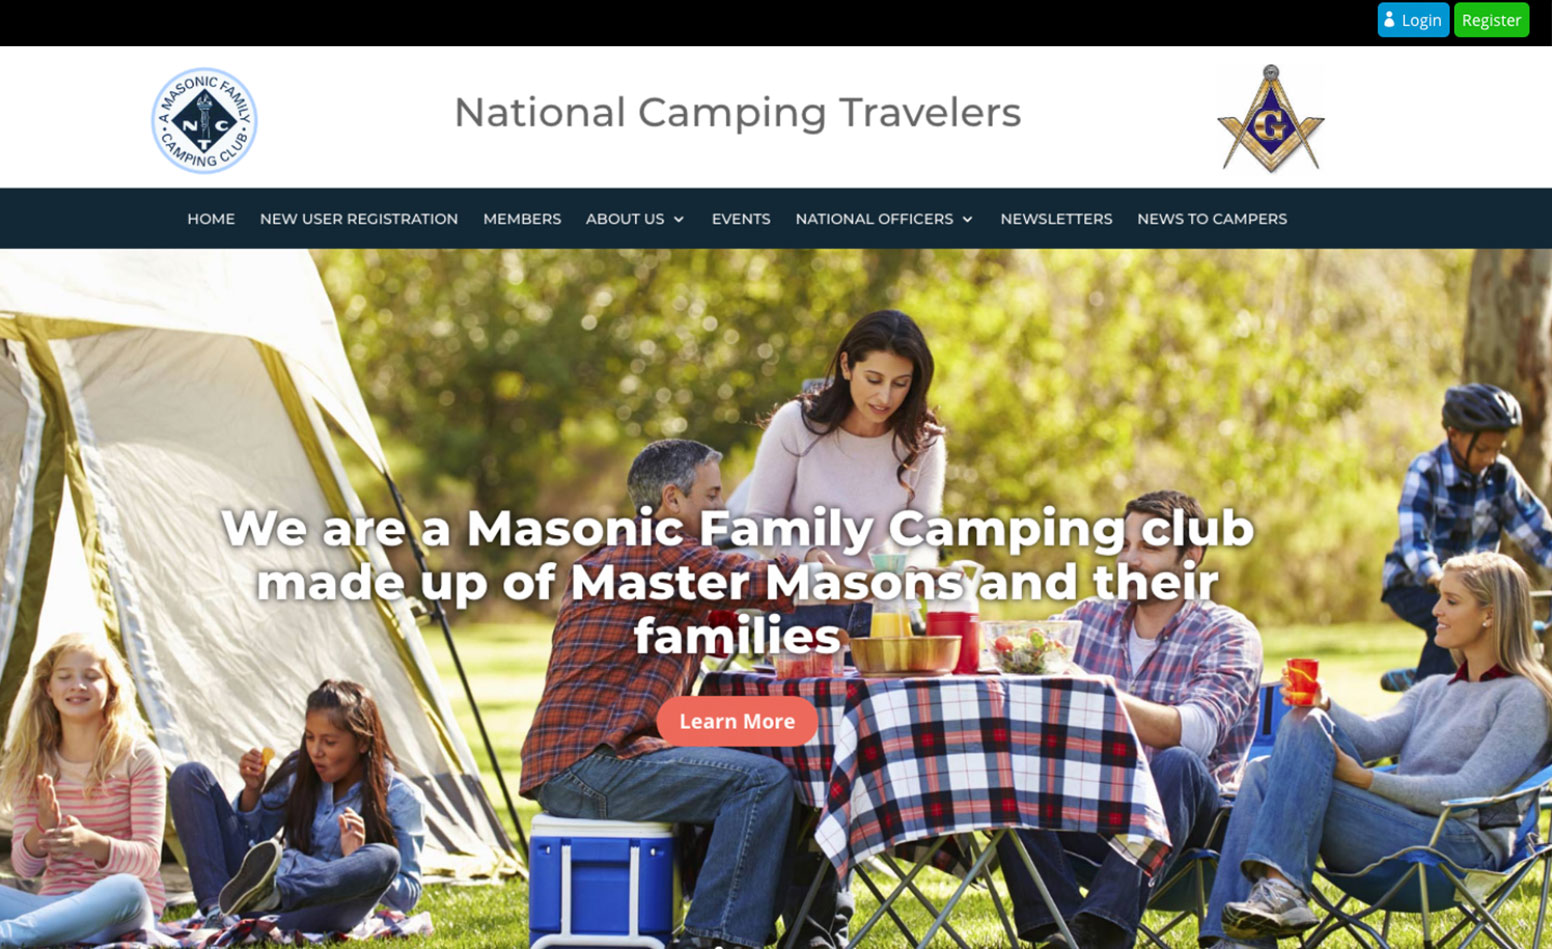 National Camping Travelers website, web design Western MA, web design CT, marketing agency, graphic design company, branding